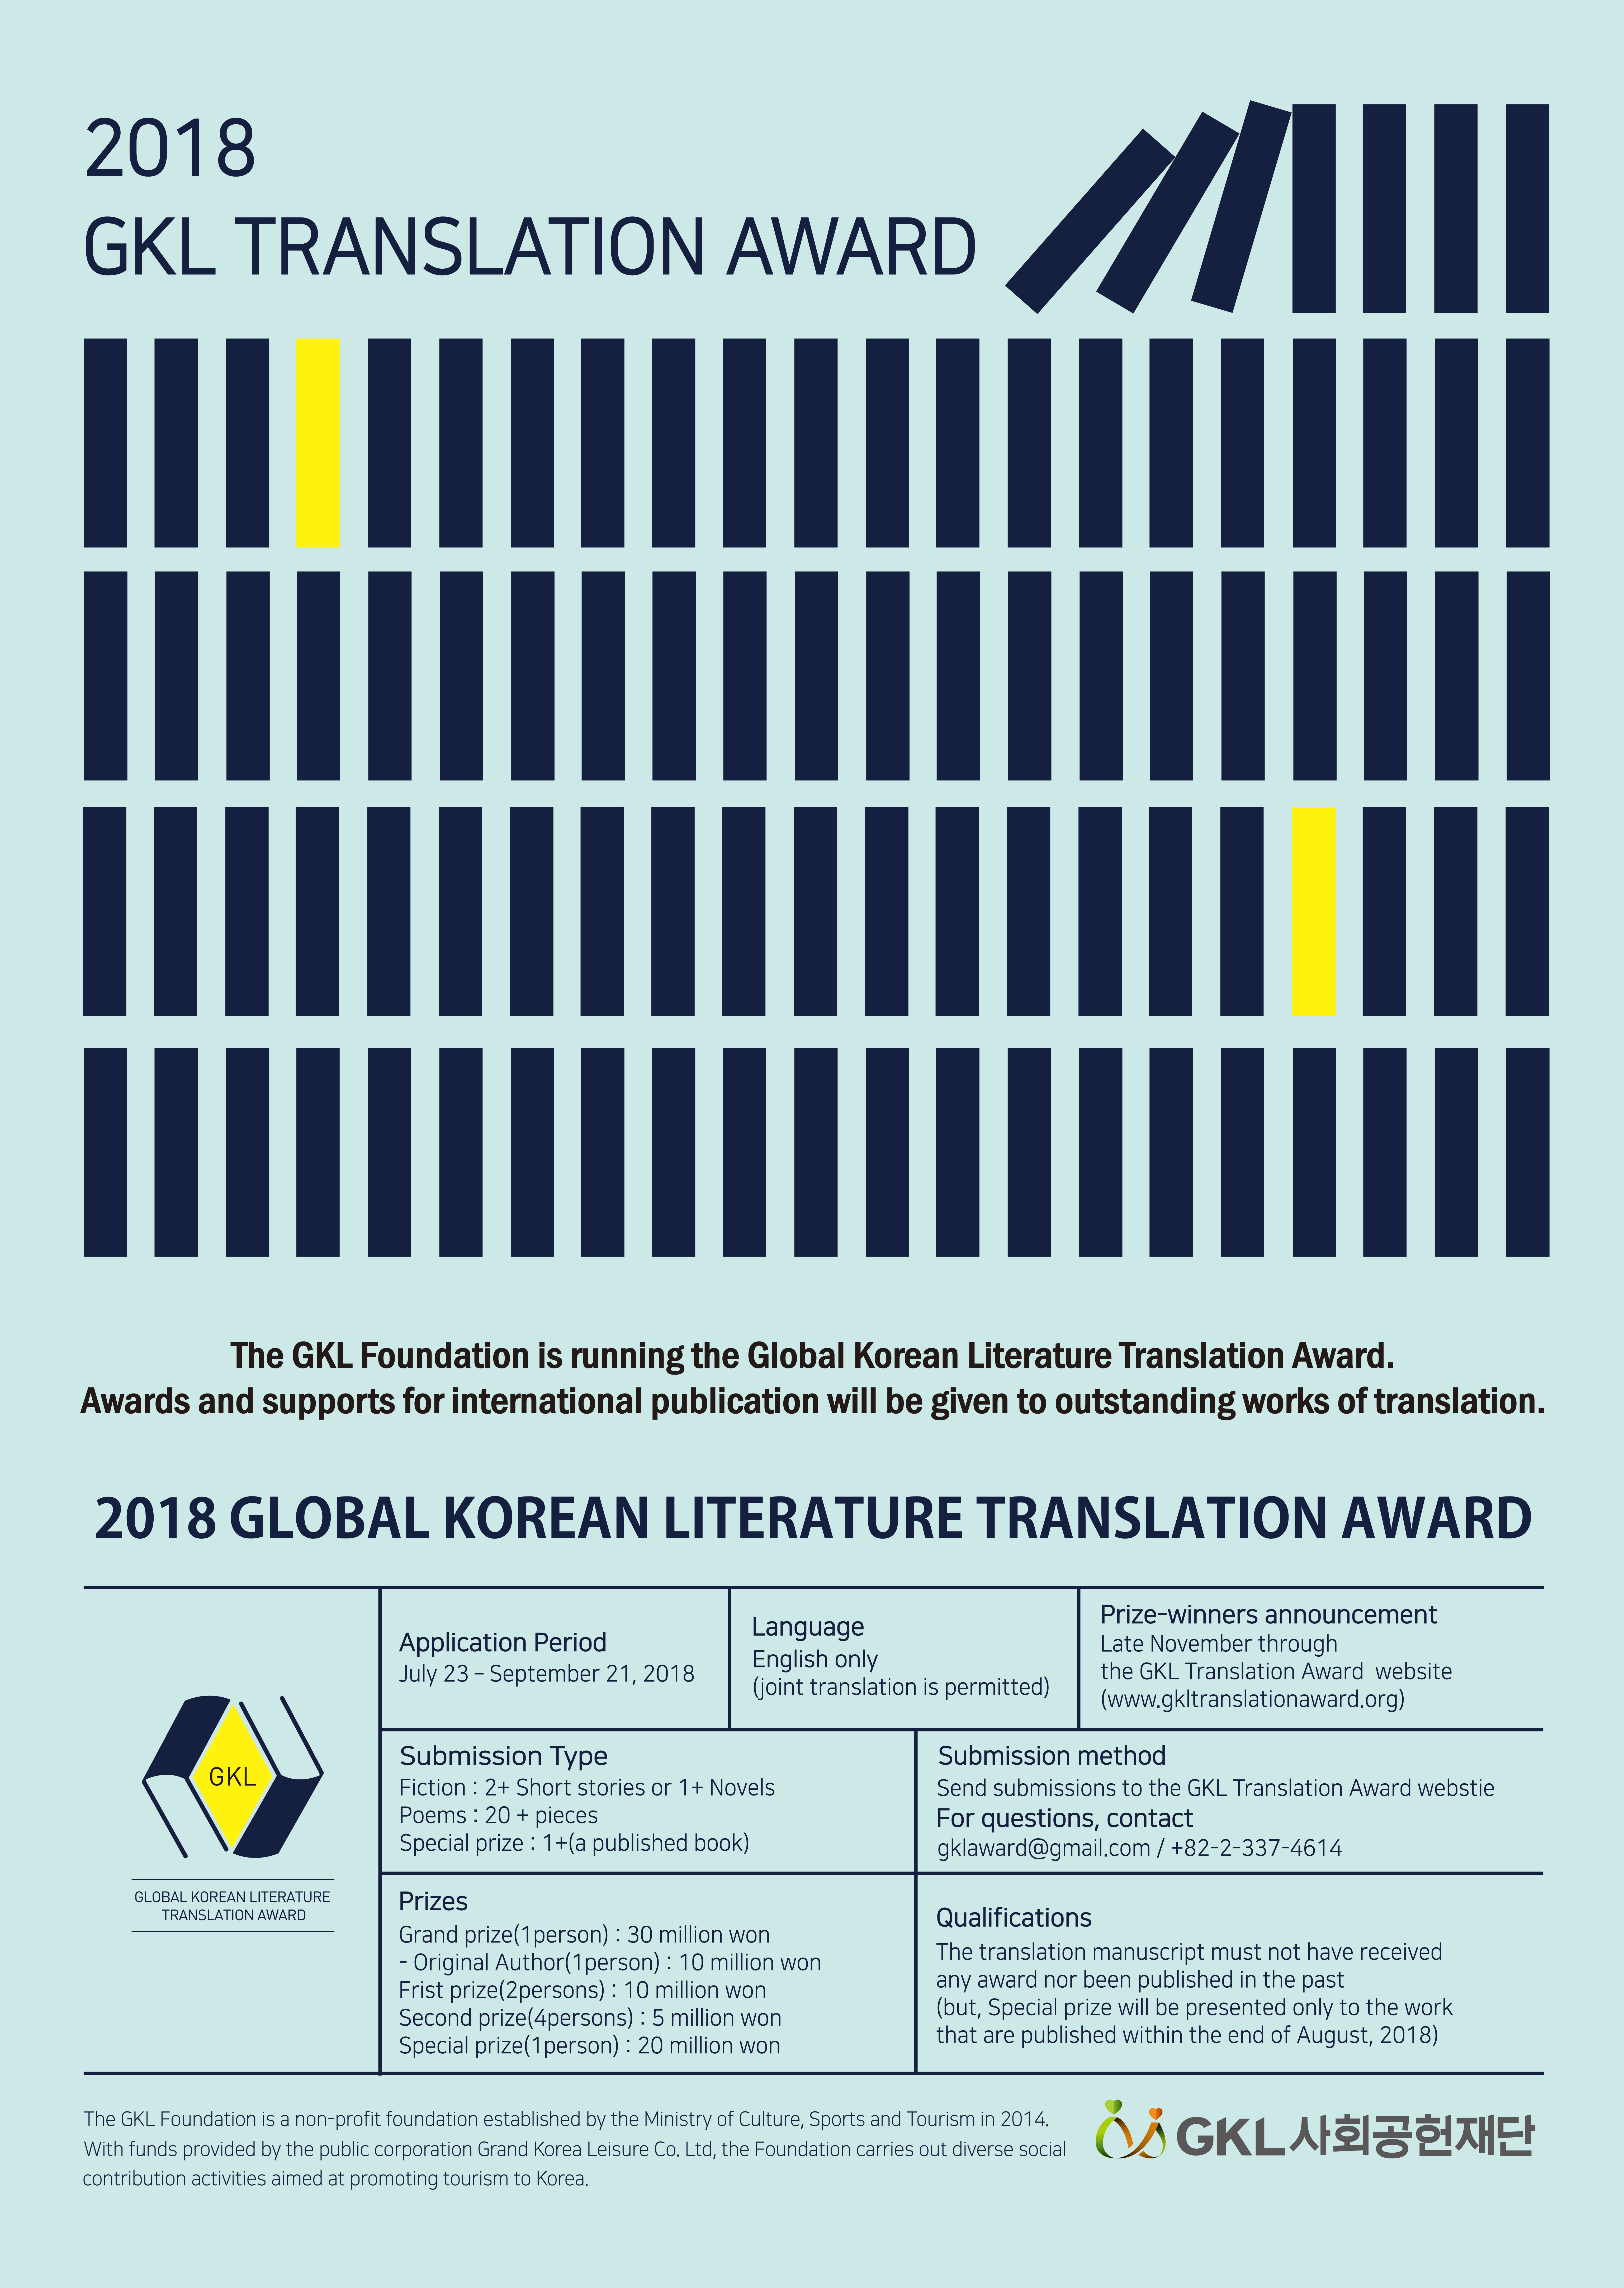 2018 GKL Translation Award Poster.jpg